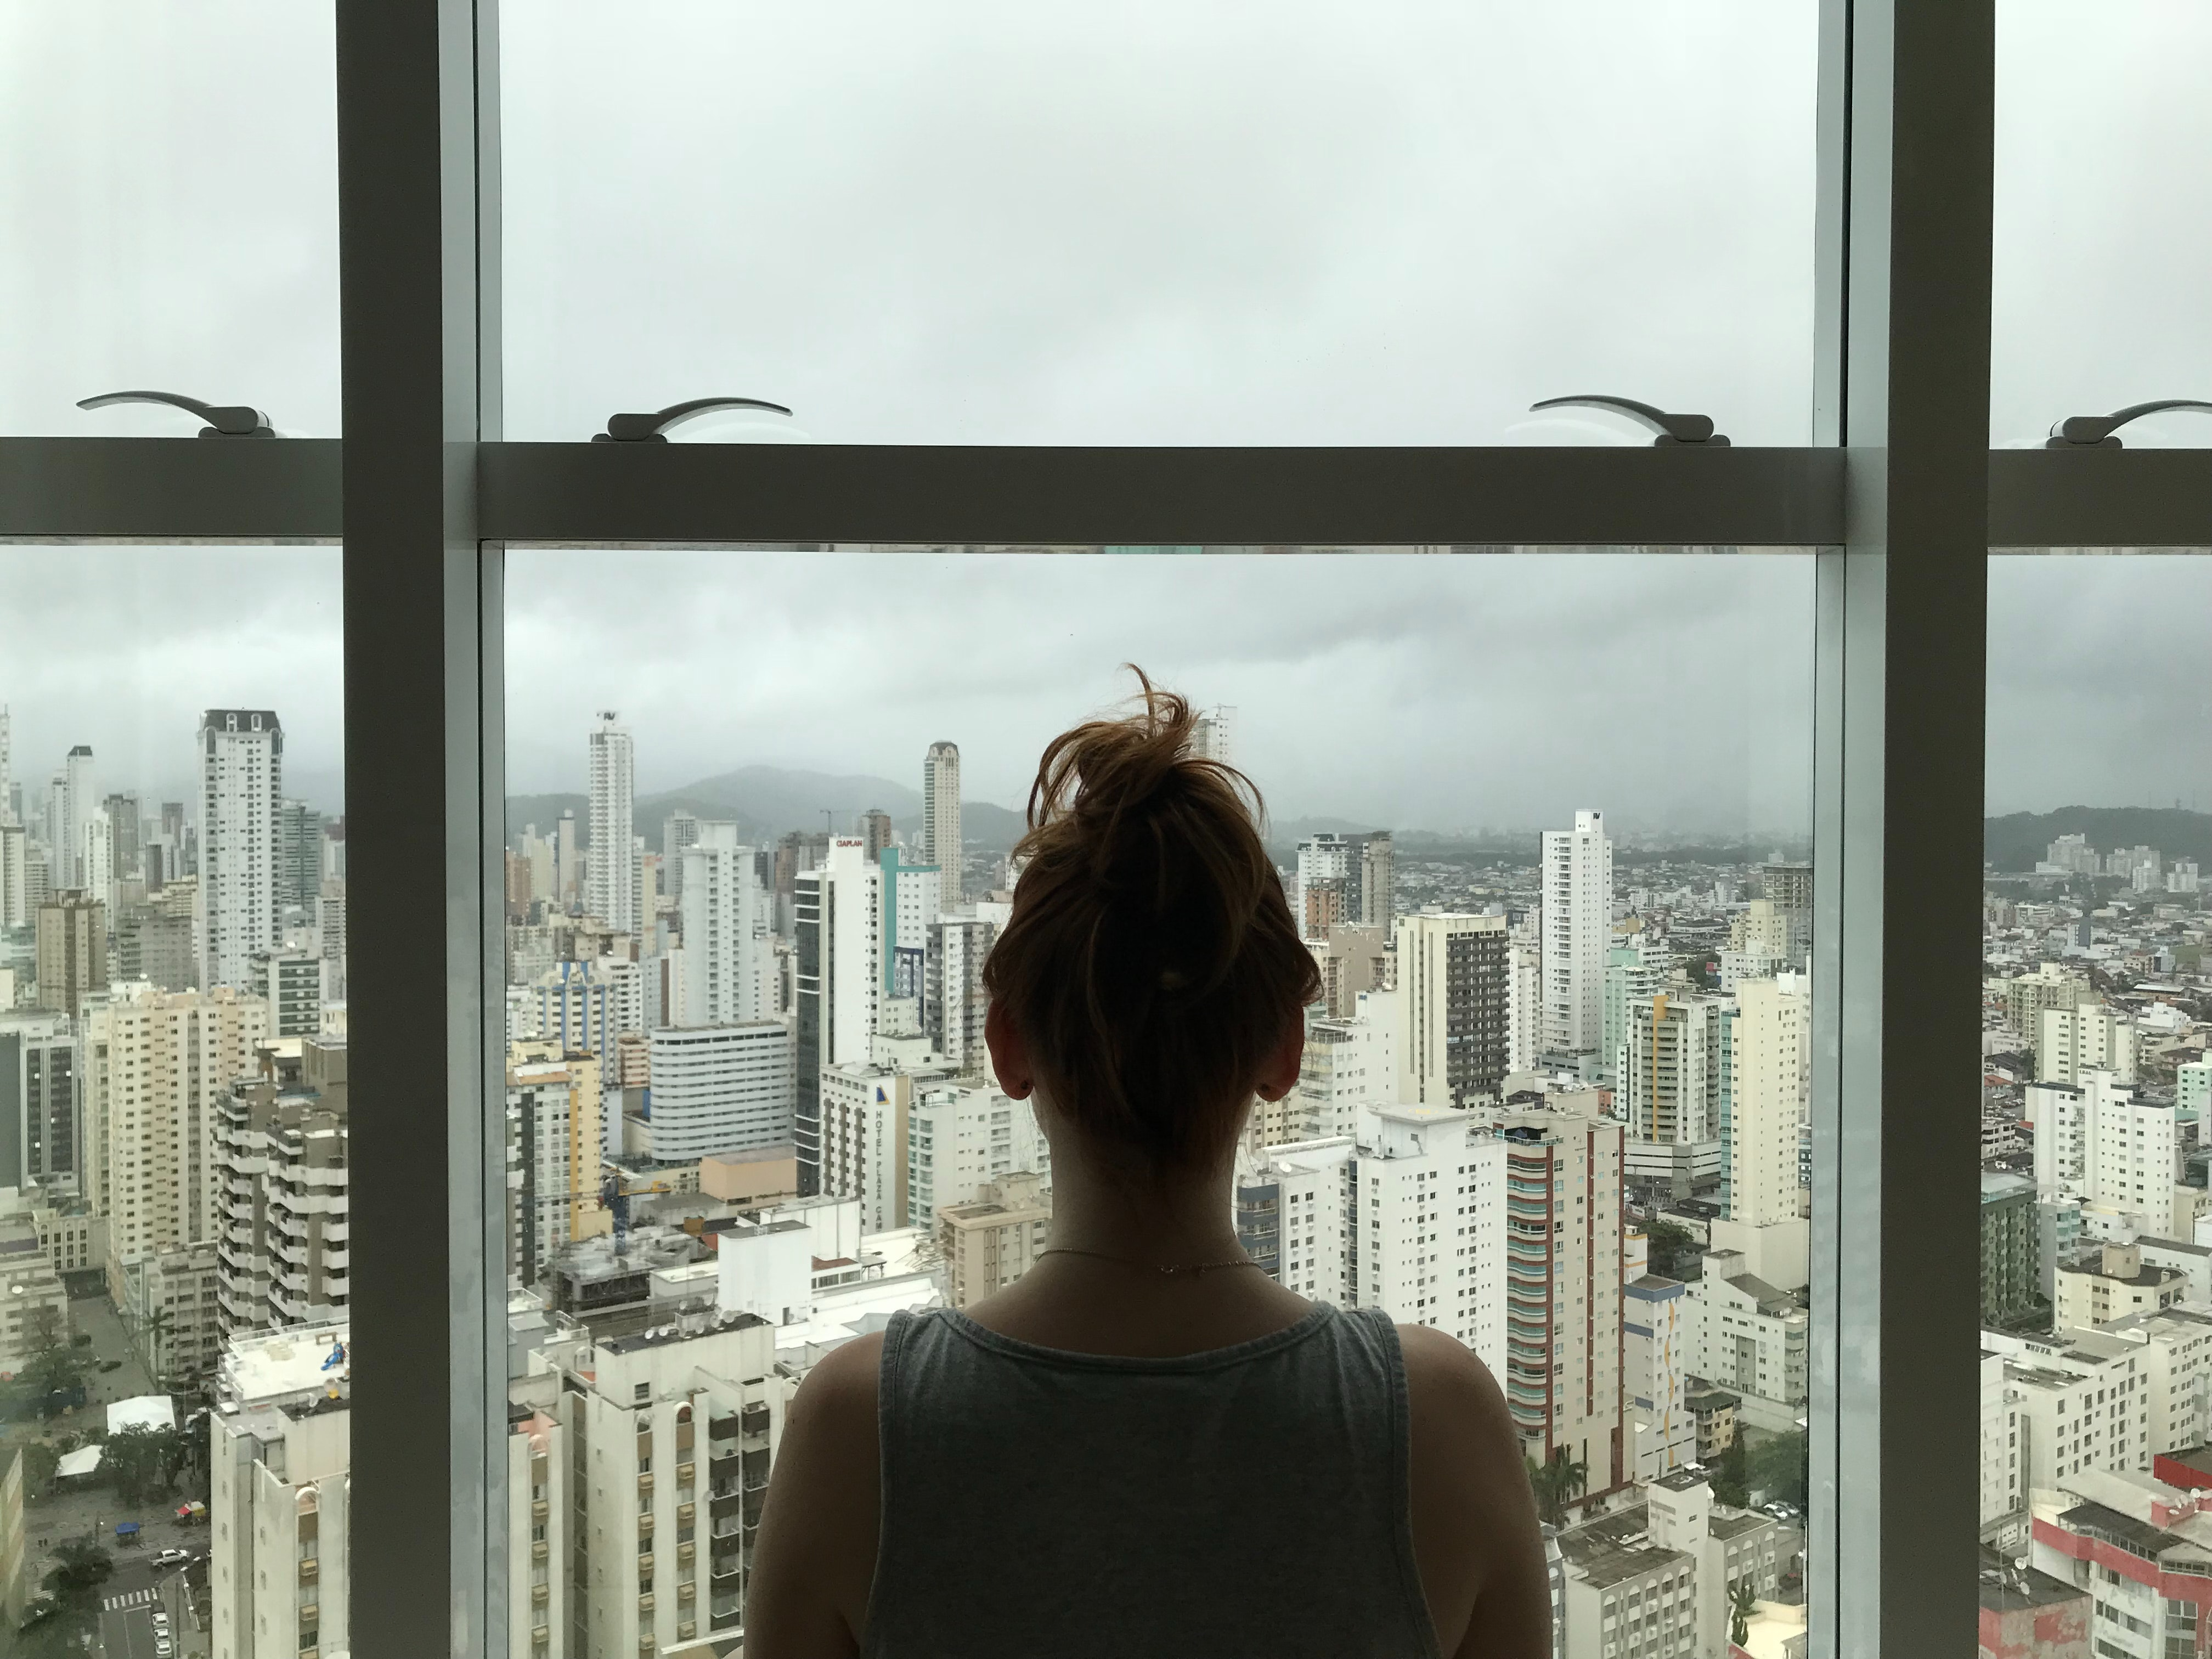 Women looking at a city skyline